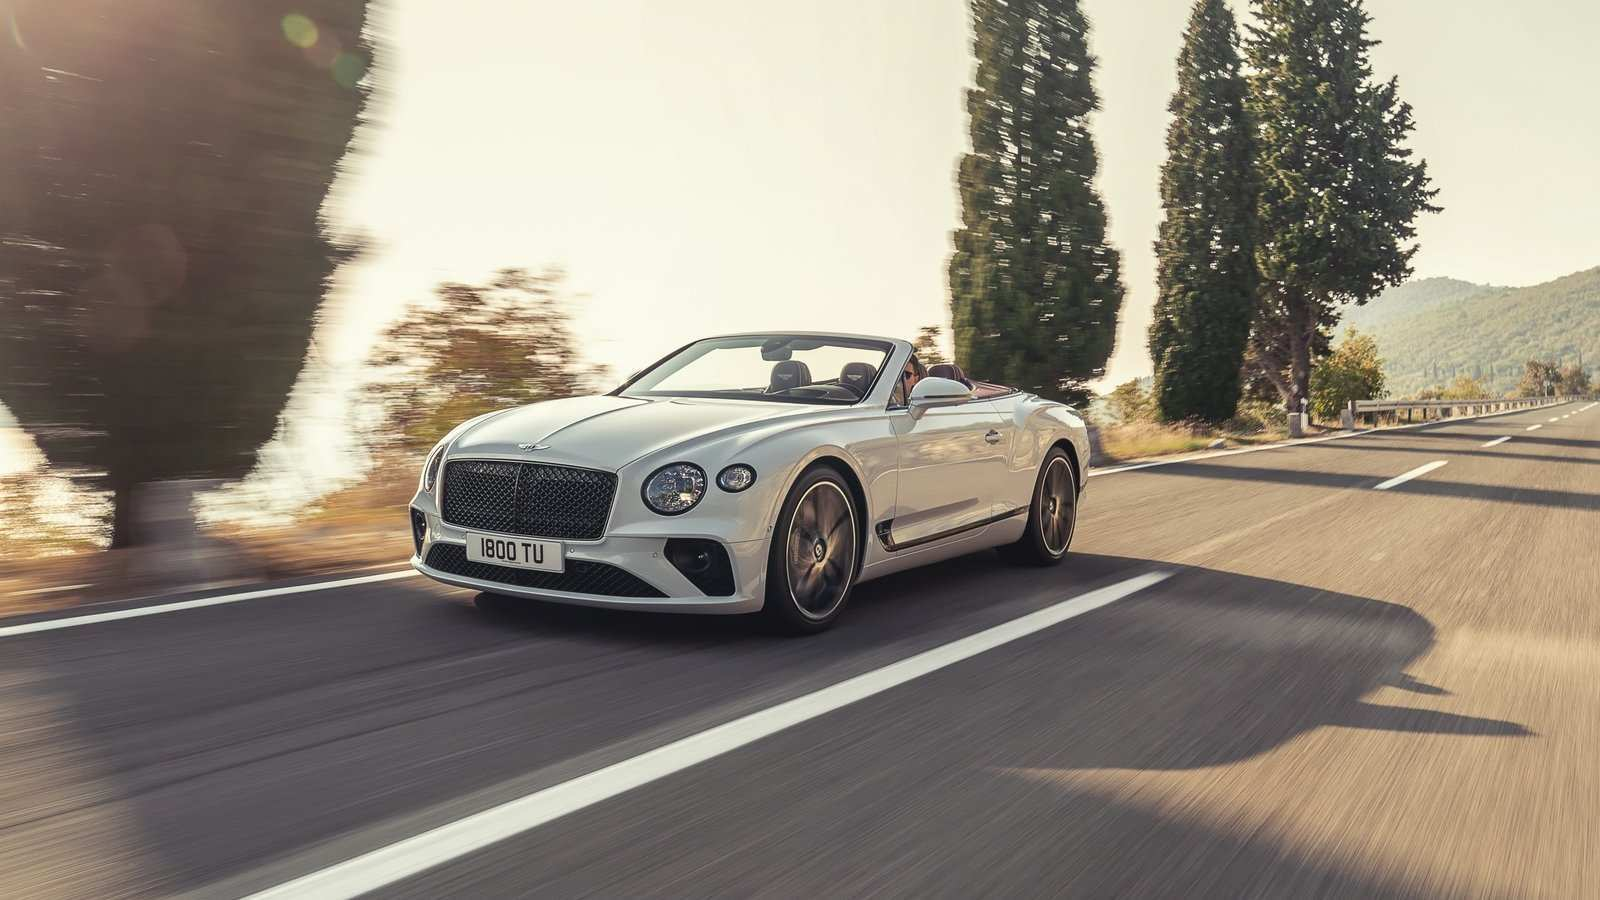 86 New 2020 Bentley Continental GT Price Design And Review